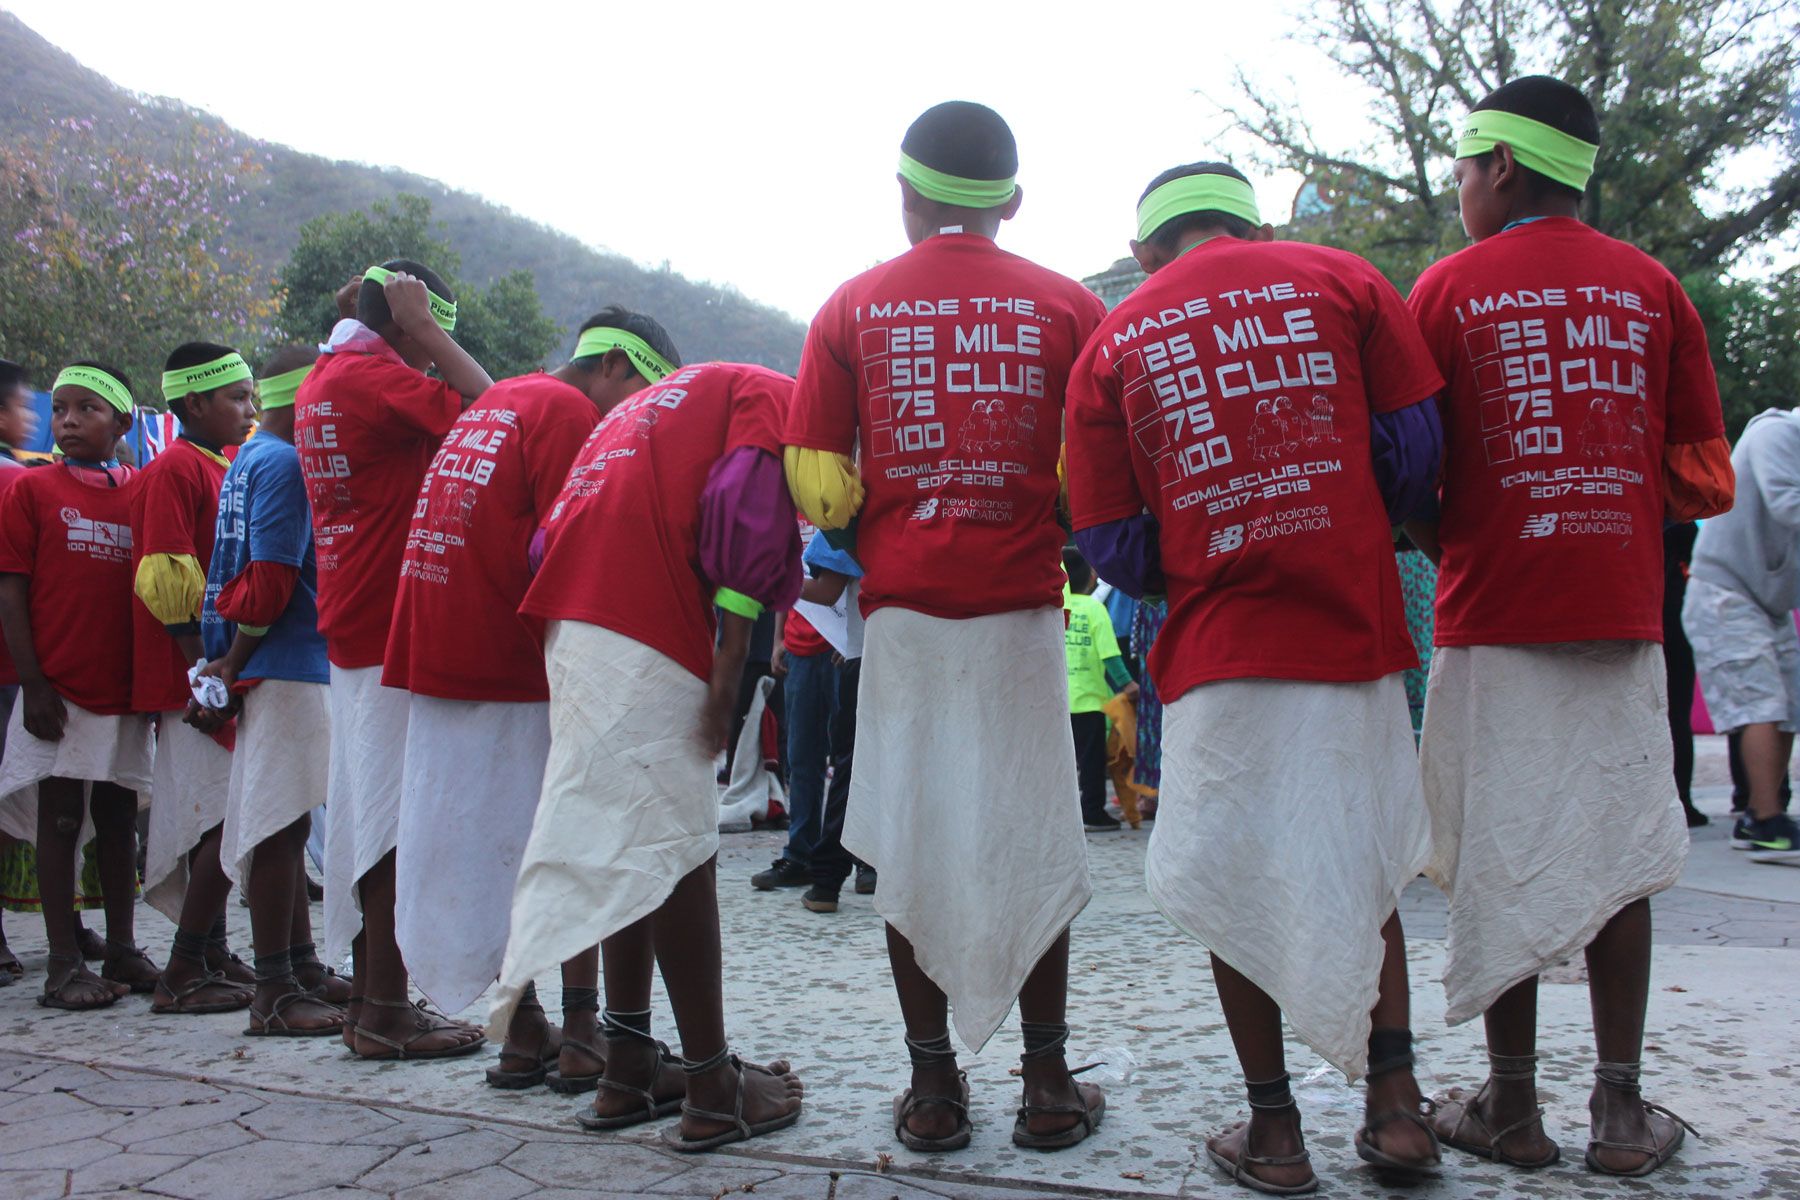 Rarmuri boys in 100 Mile Club t-shirts and traditional clothing.